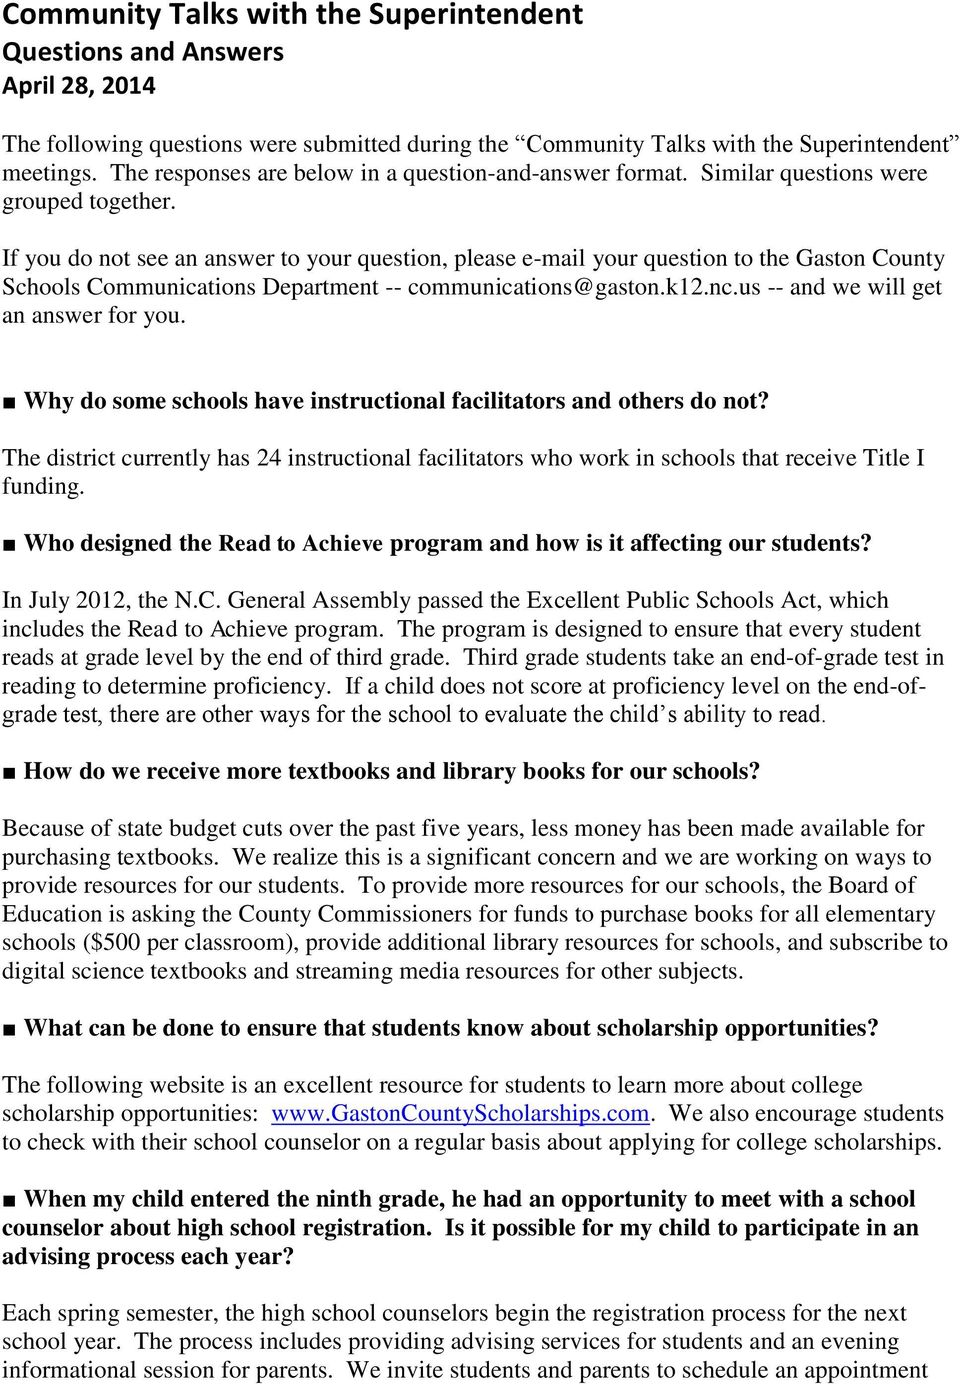 If you do not see an answer to your question, please e-mail your question to the Gaston County Schools Communications Department -- communications@gaston.k12.nc.